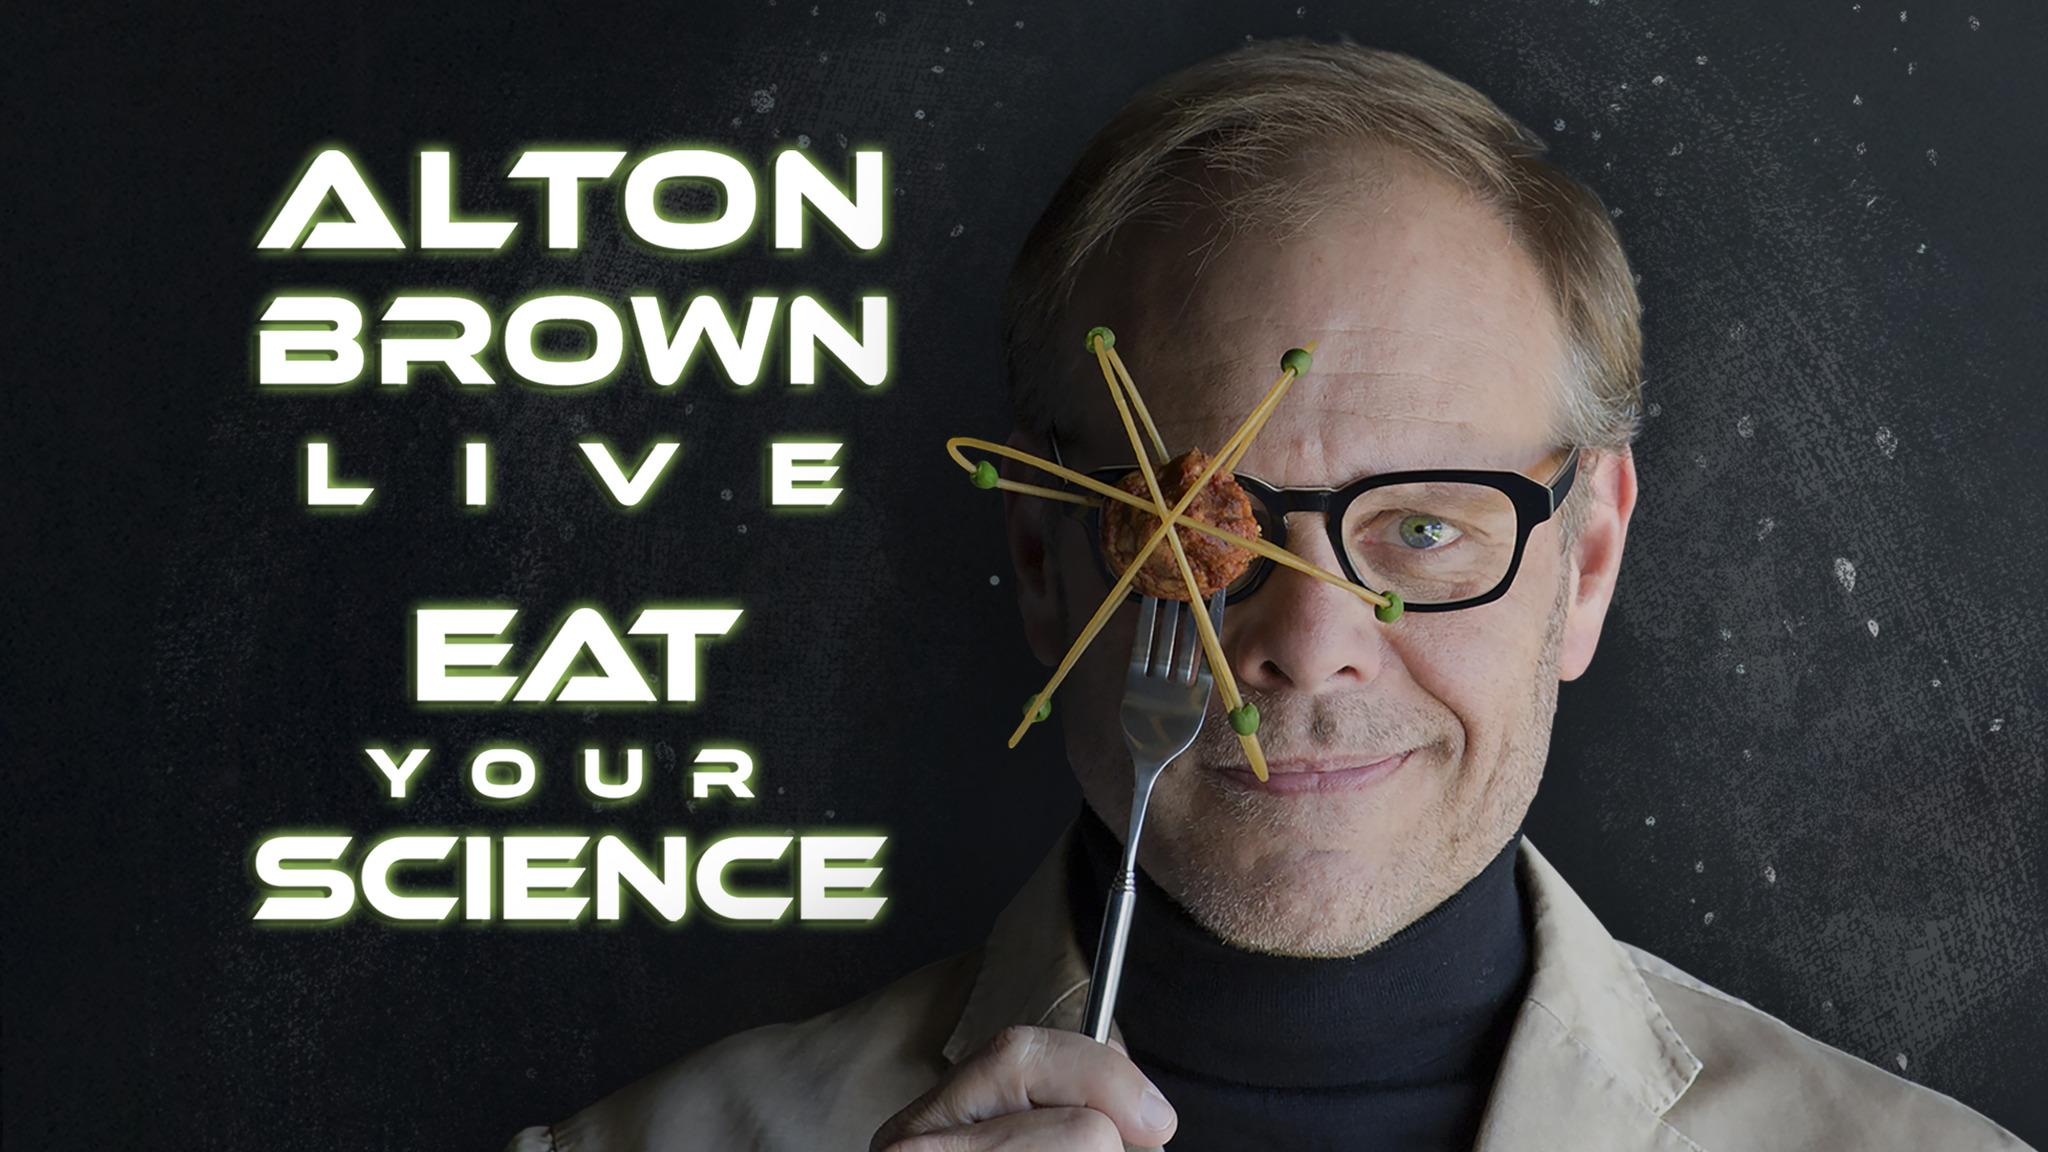 Alton Brown Live:  Eat Your Science at Tivoli Theatre